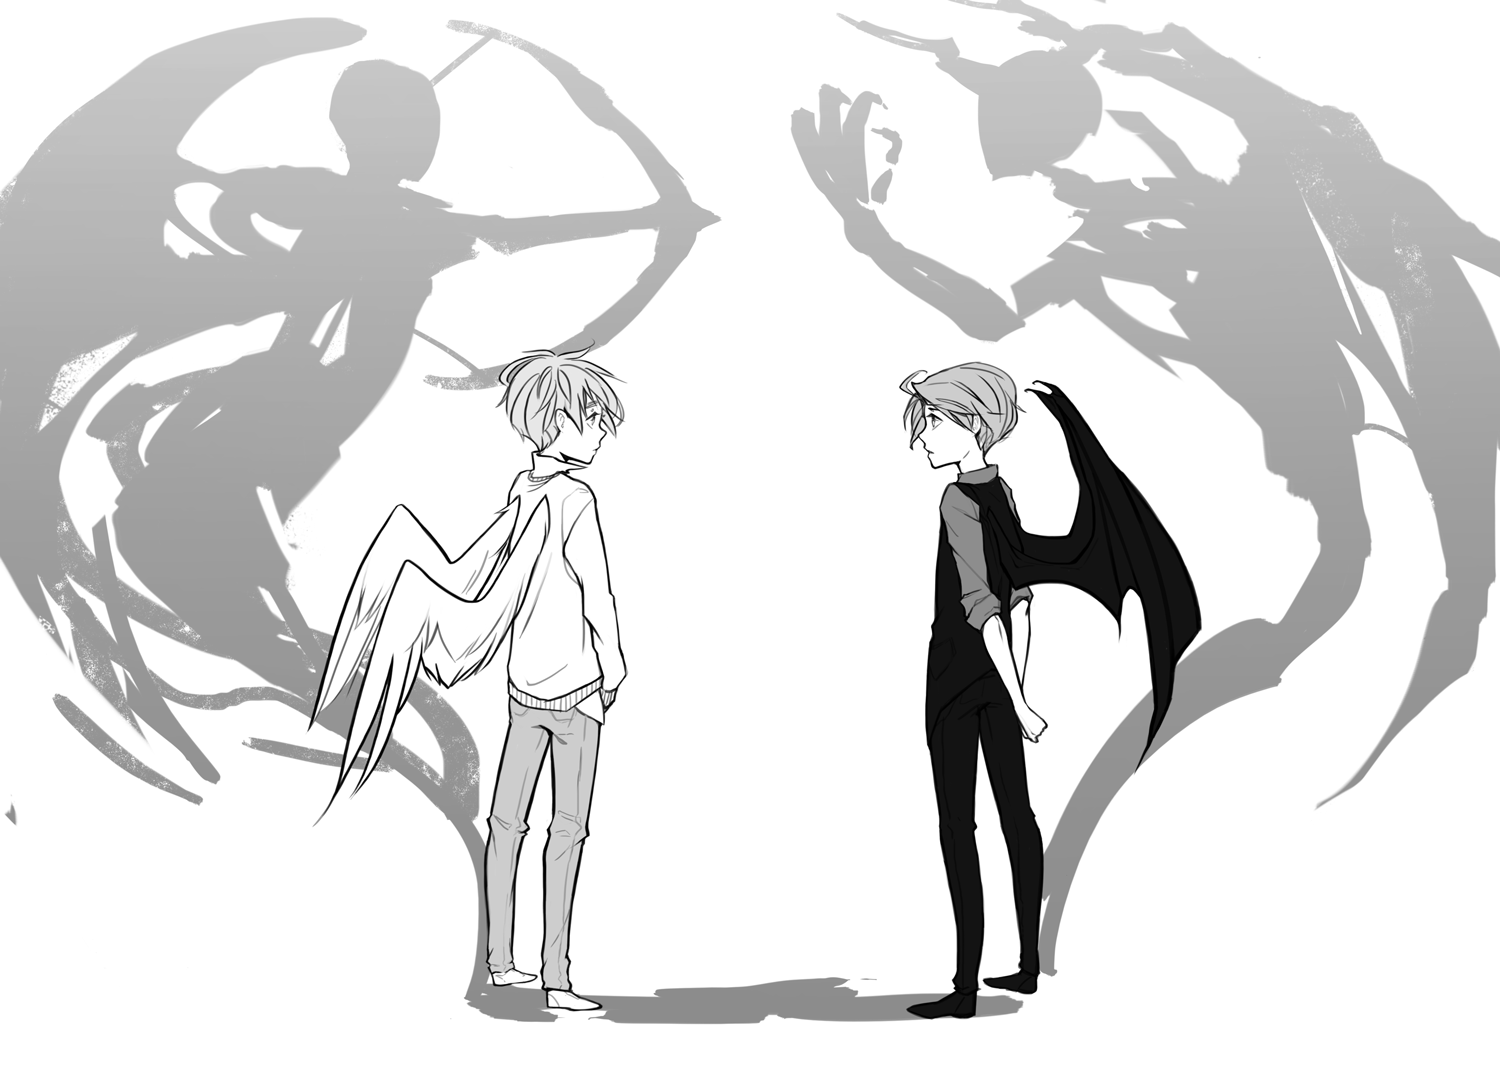 Angels and Demons AU by SilentSeven on DeviantArt